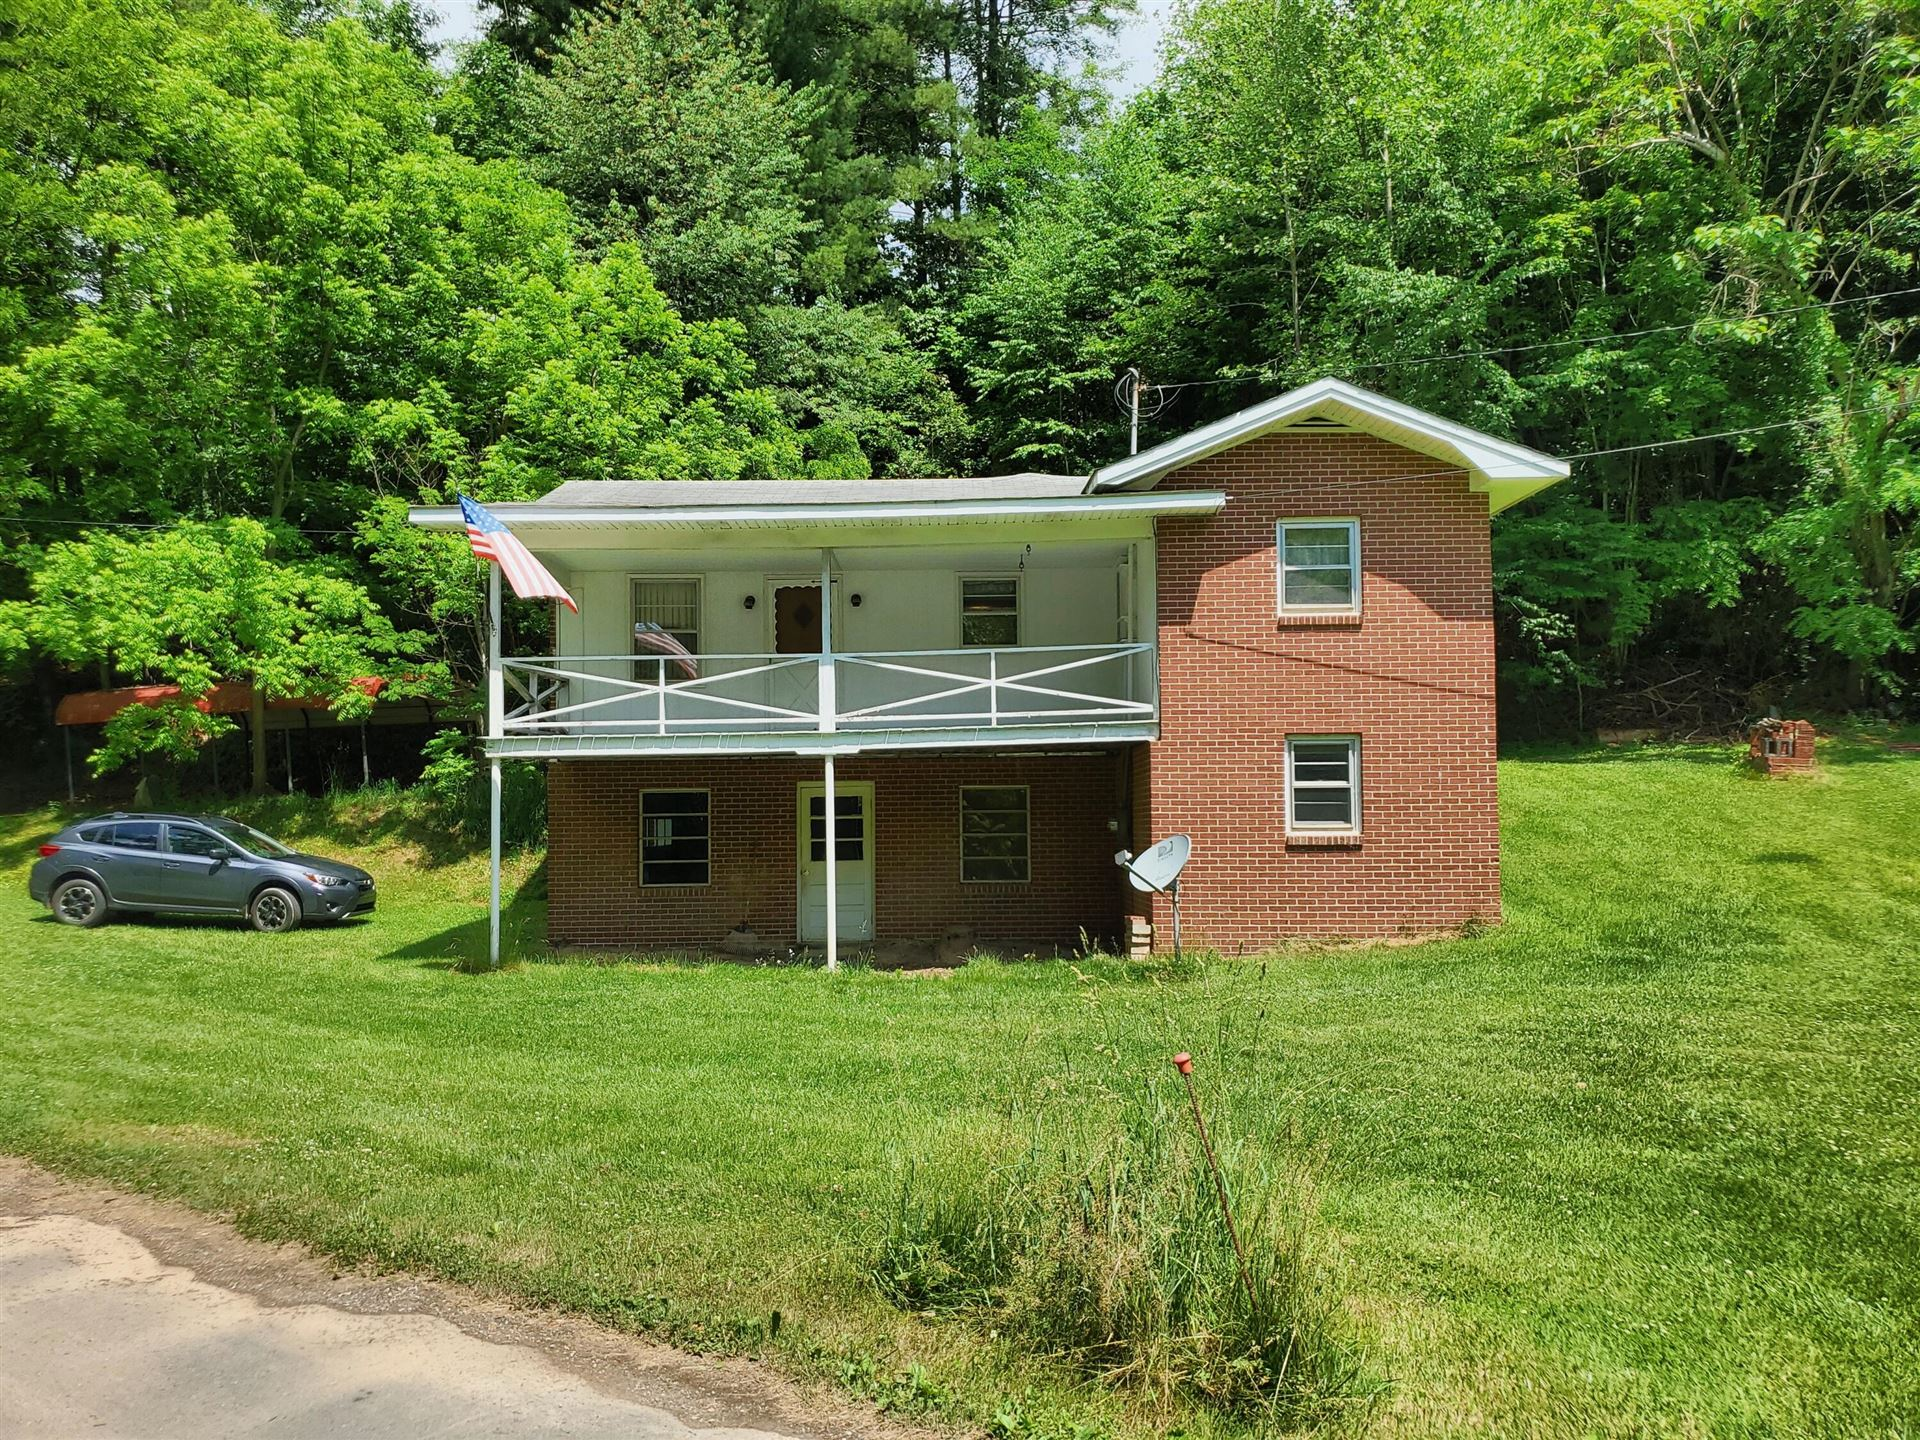 Photo of 140 Snyder Road, Mountain City, TN 37683 (MLS # 9923798)